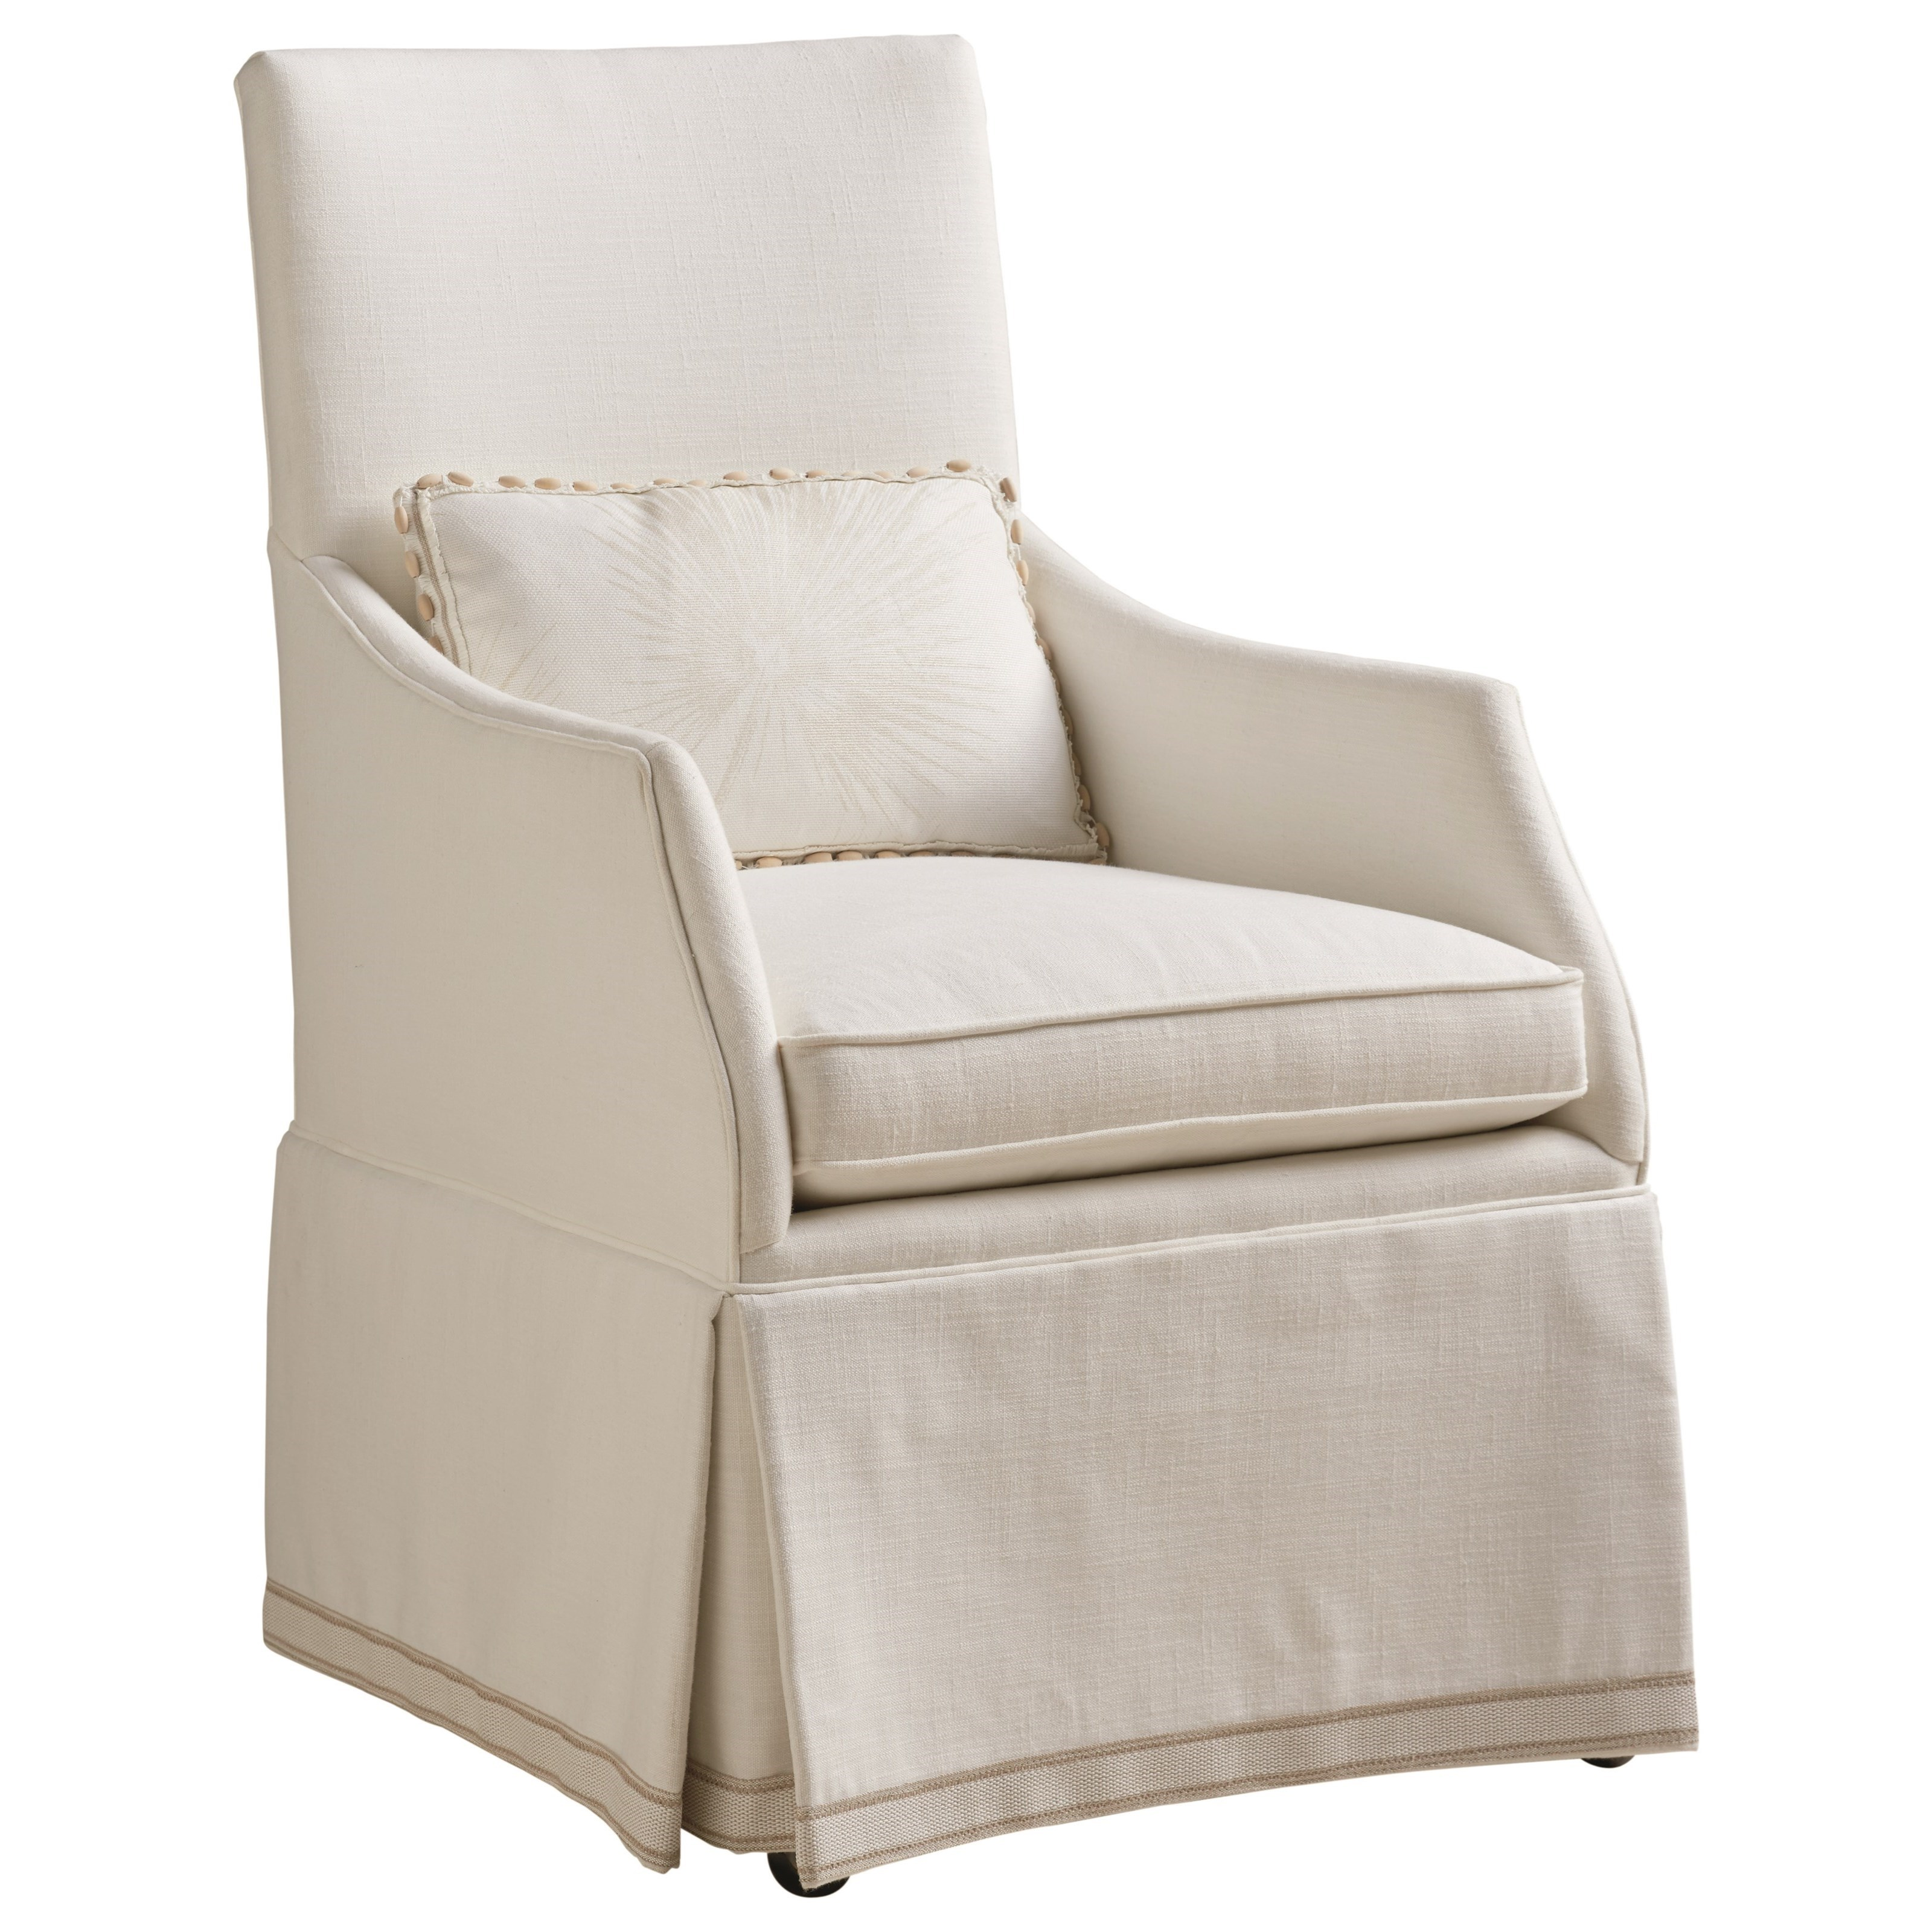 Barclay Butera Upholstery Adelaide Host Dining Chair by Barclay Butera at Baer's Furniture